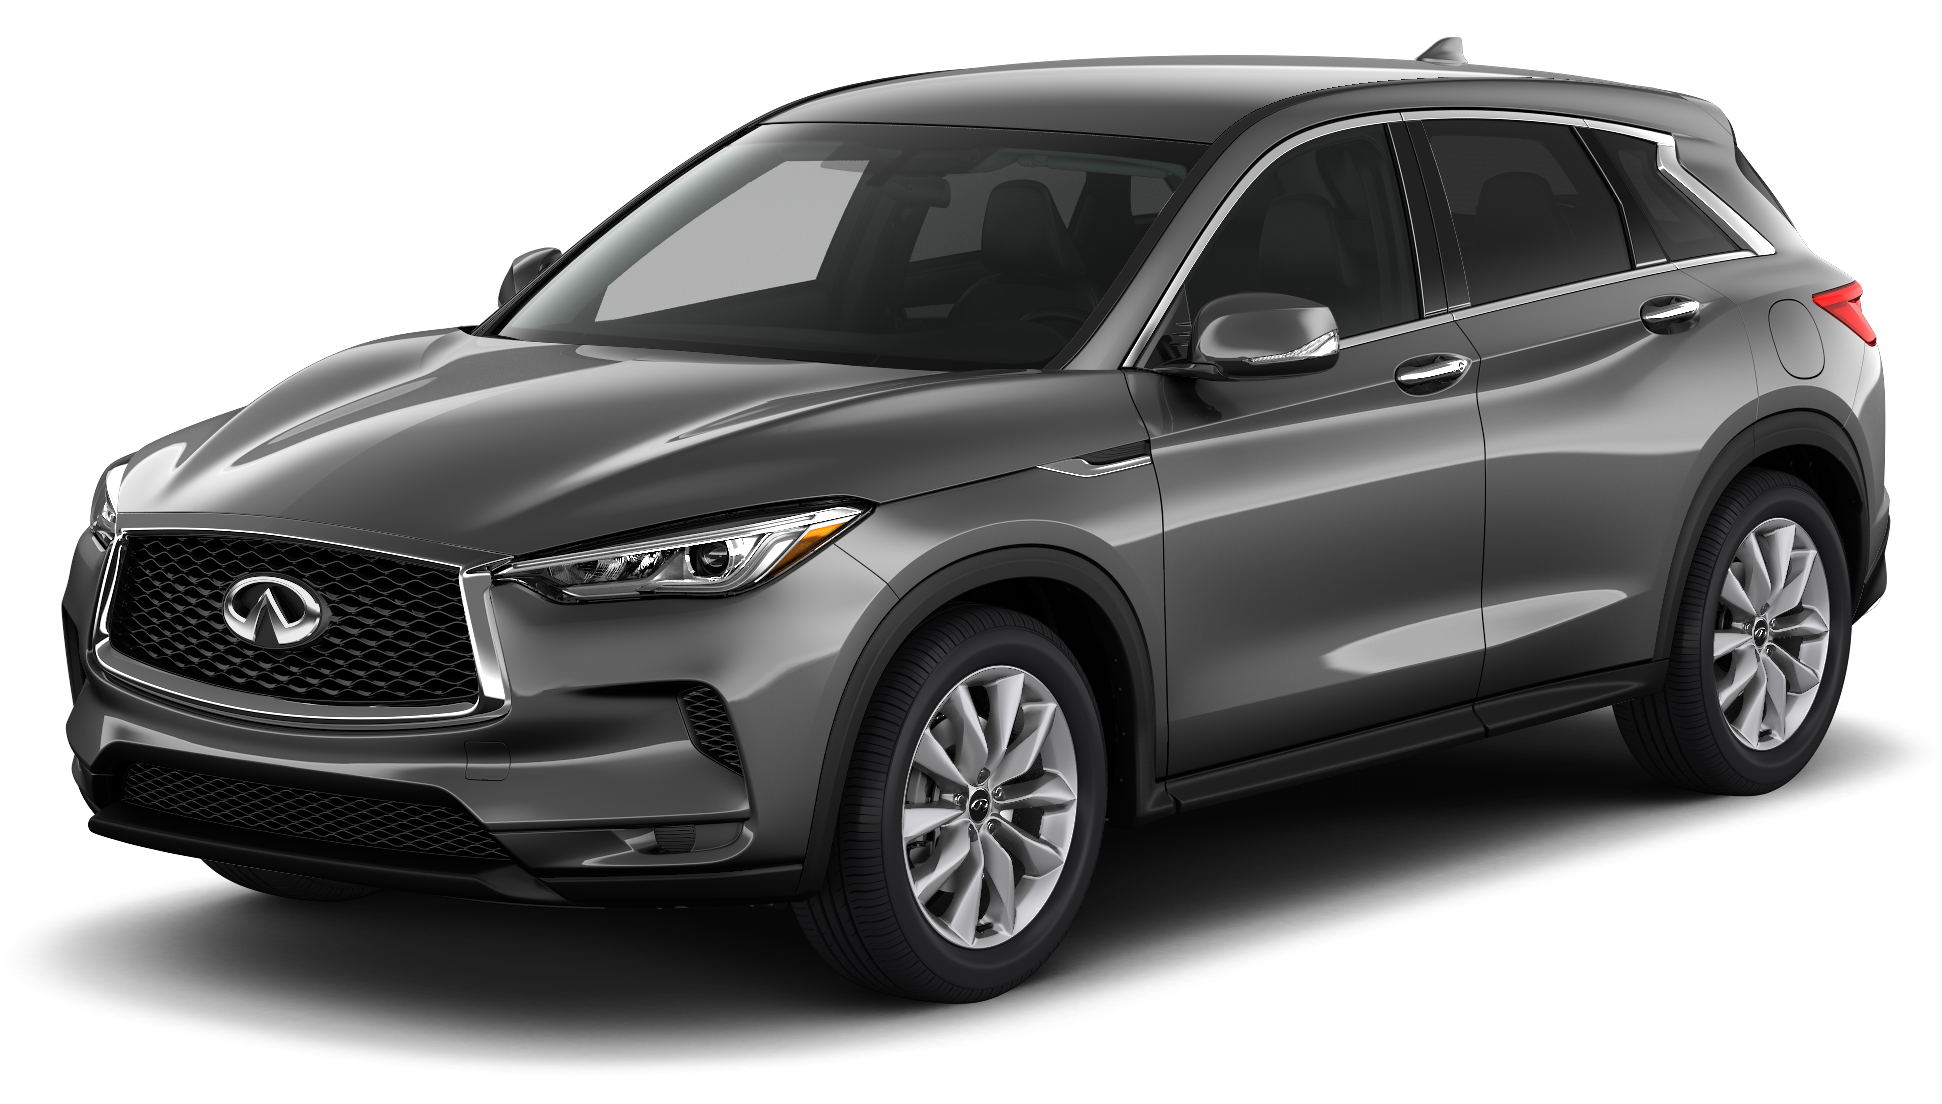 infiniti york new nyc infinity deals car specials lease